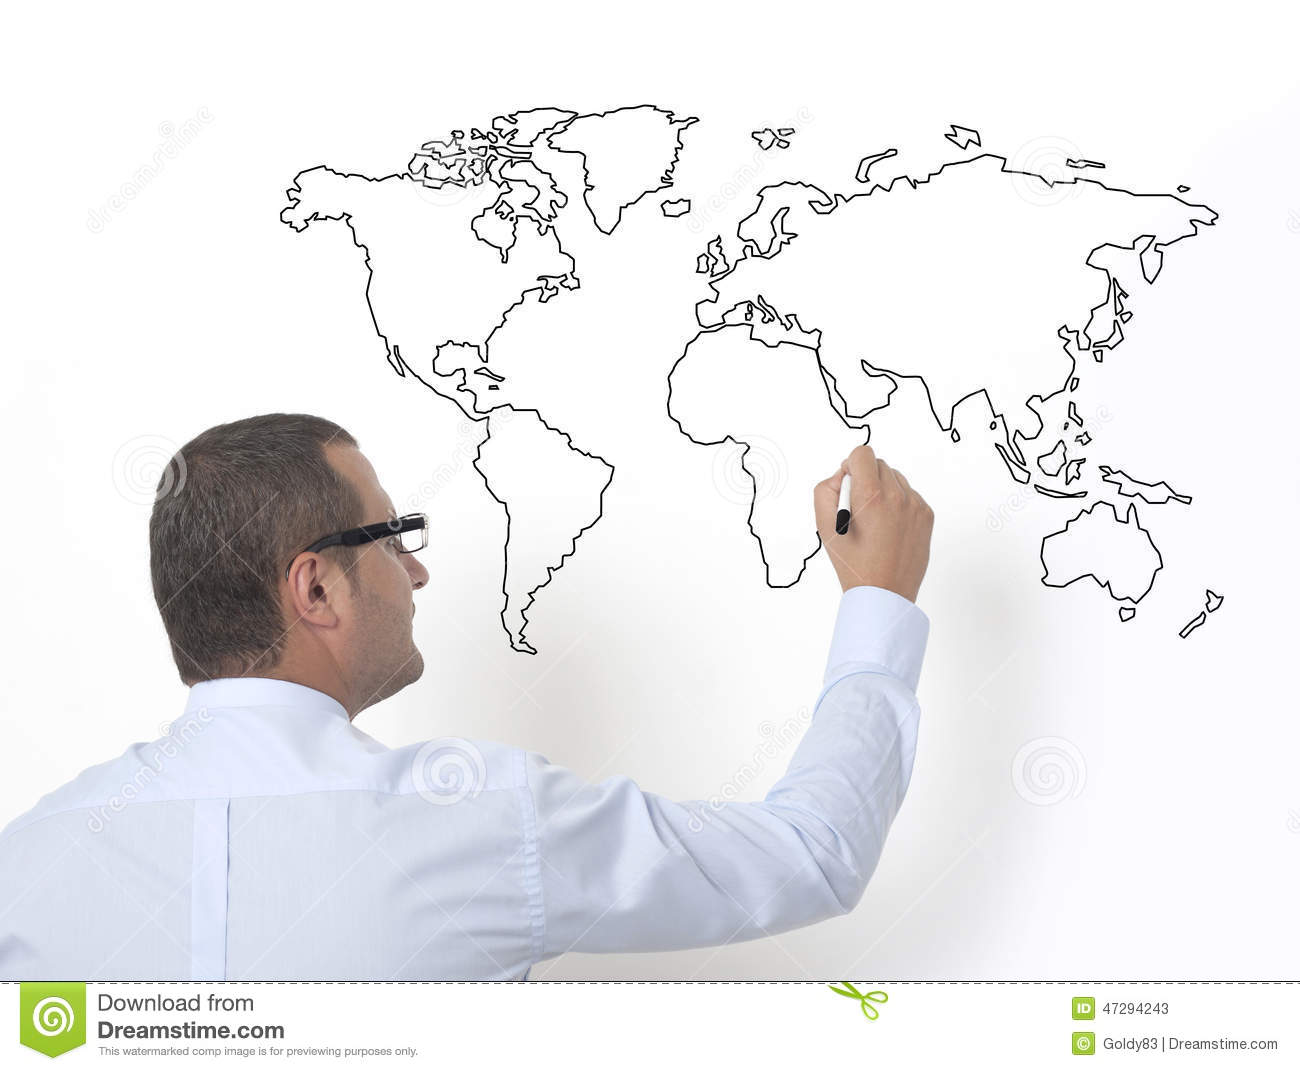 Teacher Drawing The World Map Stock Image - Image of professor, felt on